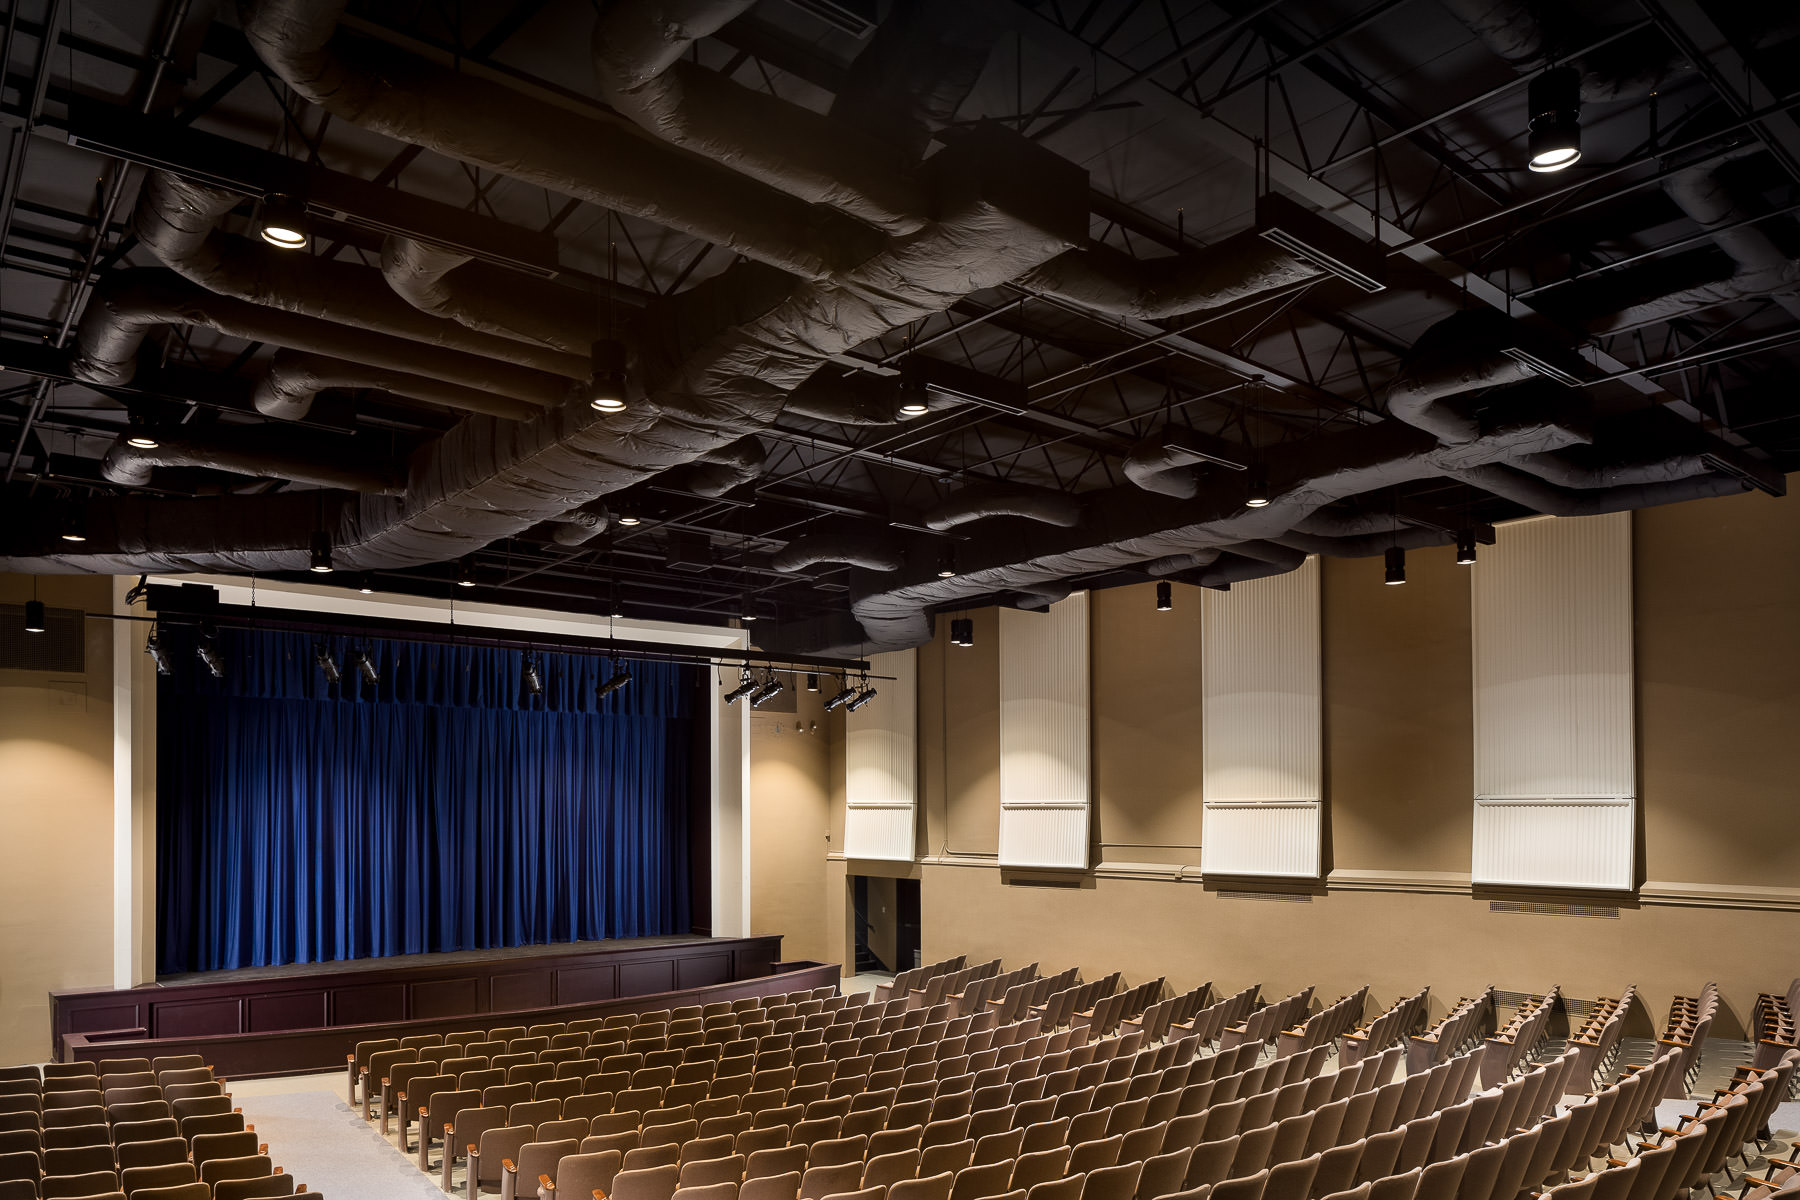 The renovated auditorium at Vergennes Middle and High School in Vermont by Neagley & Chase Construction by commercial photographer Stina Booth